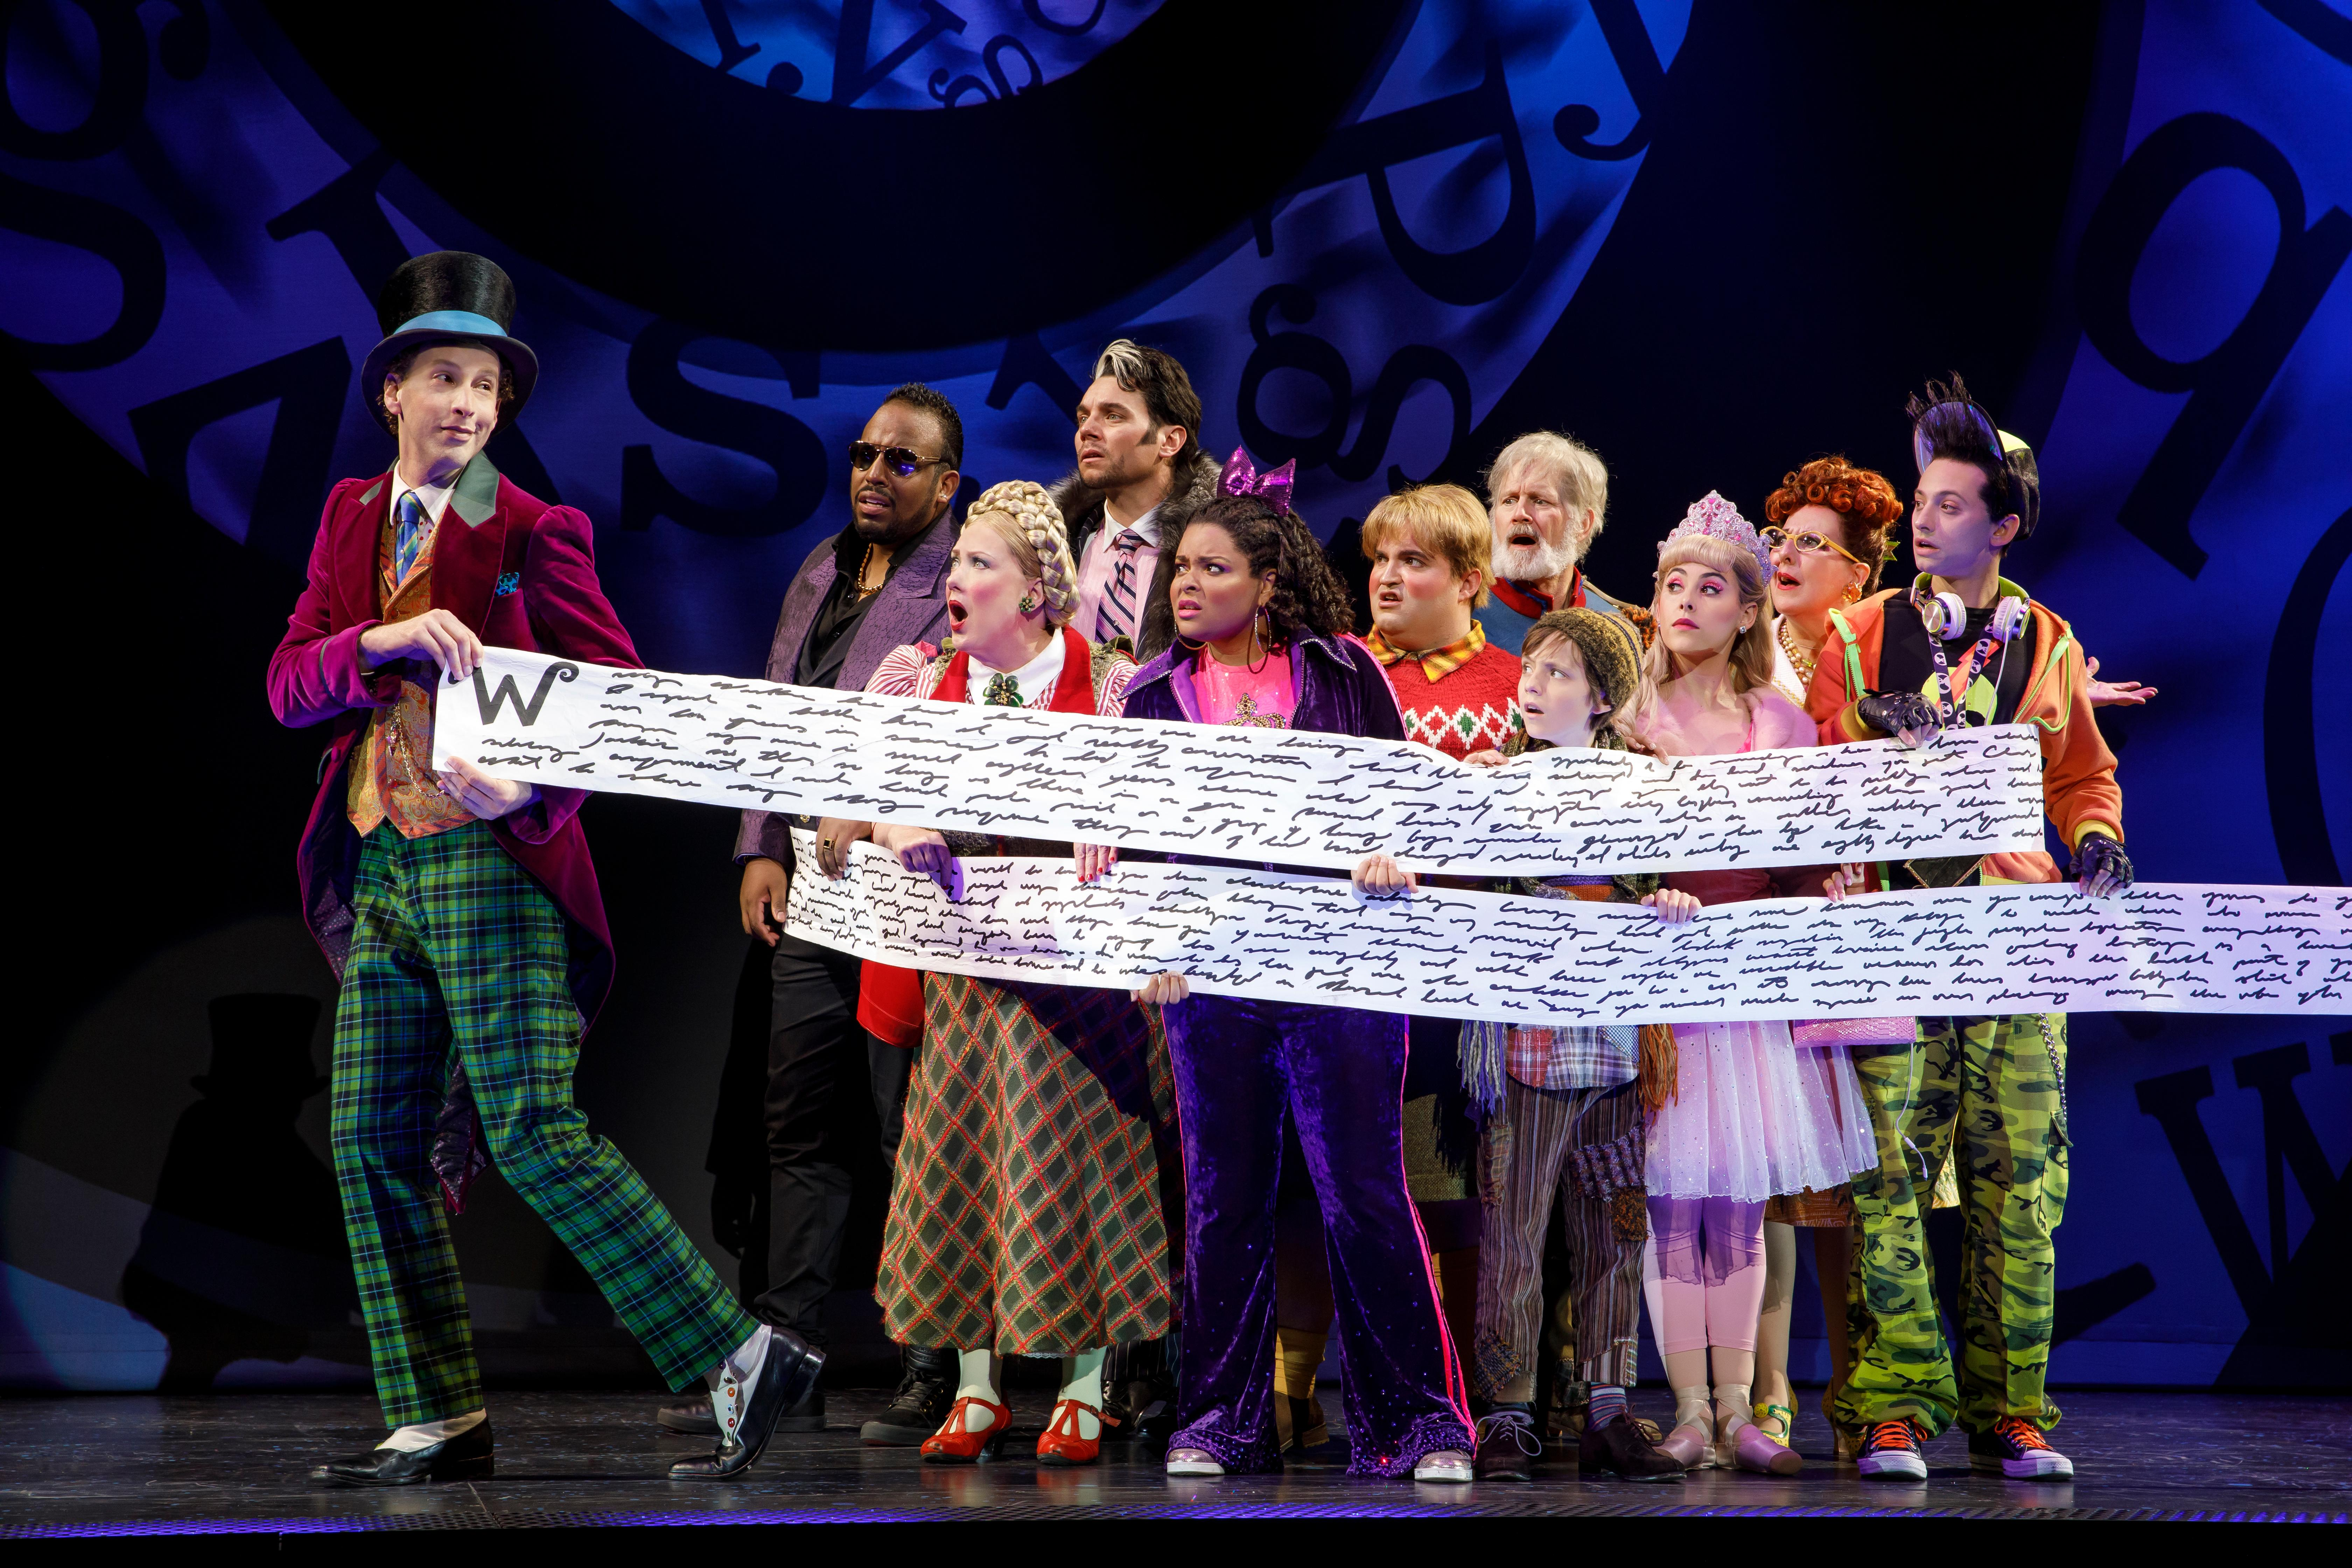 Charlie and the Chocolate Factory is the golden ticket when it comes to fun and fanciful musicals. (Courtesy Joan Marcus)